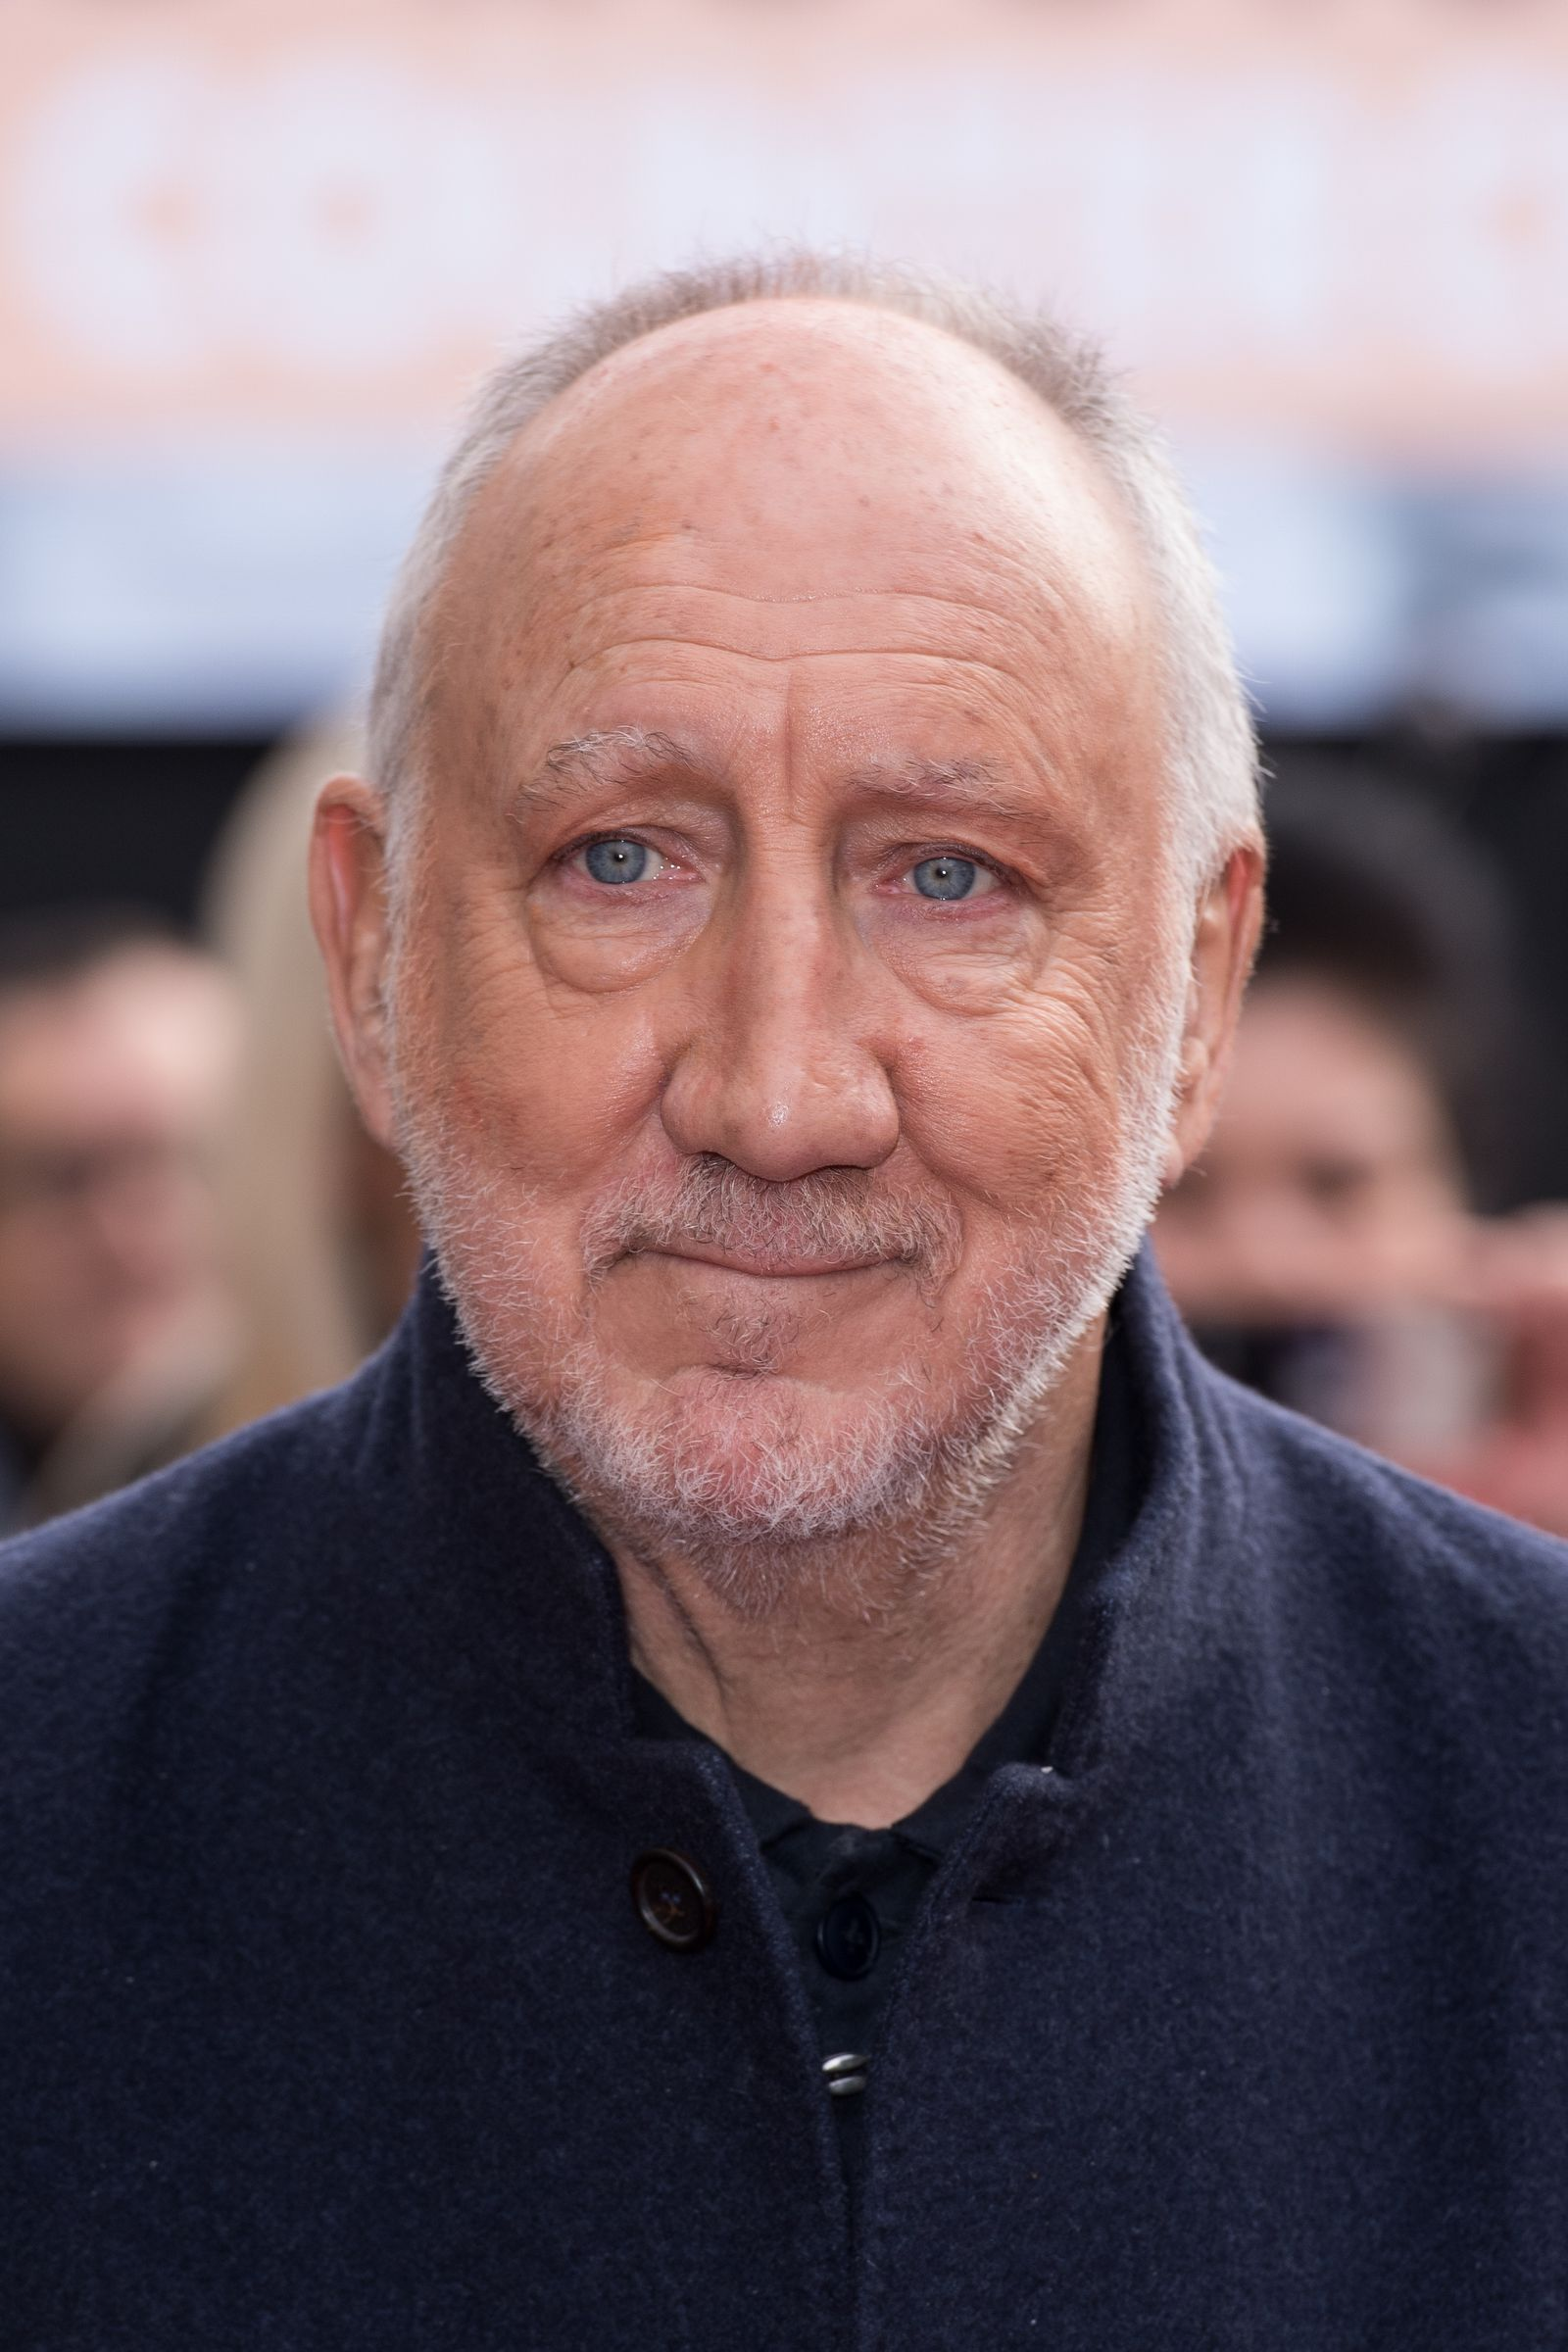 Pete Townshend - Music Walk Of Fame Founding Stone Unveiling